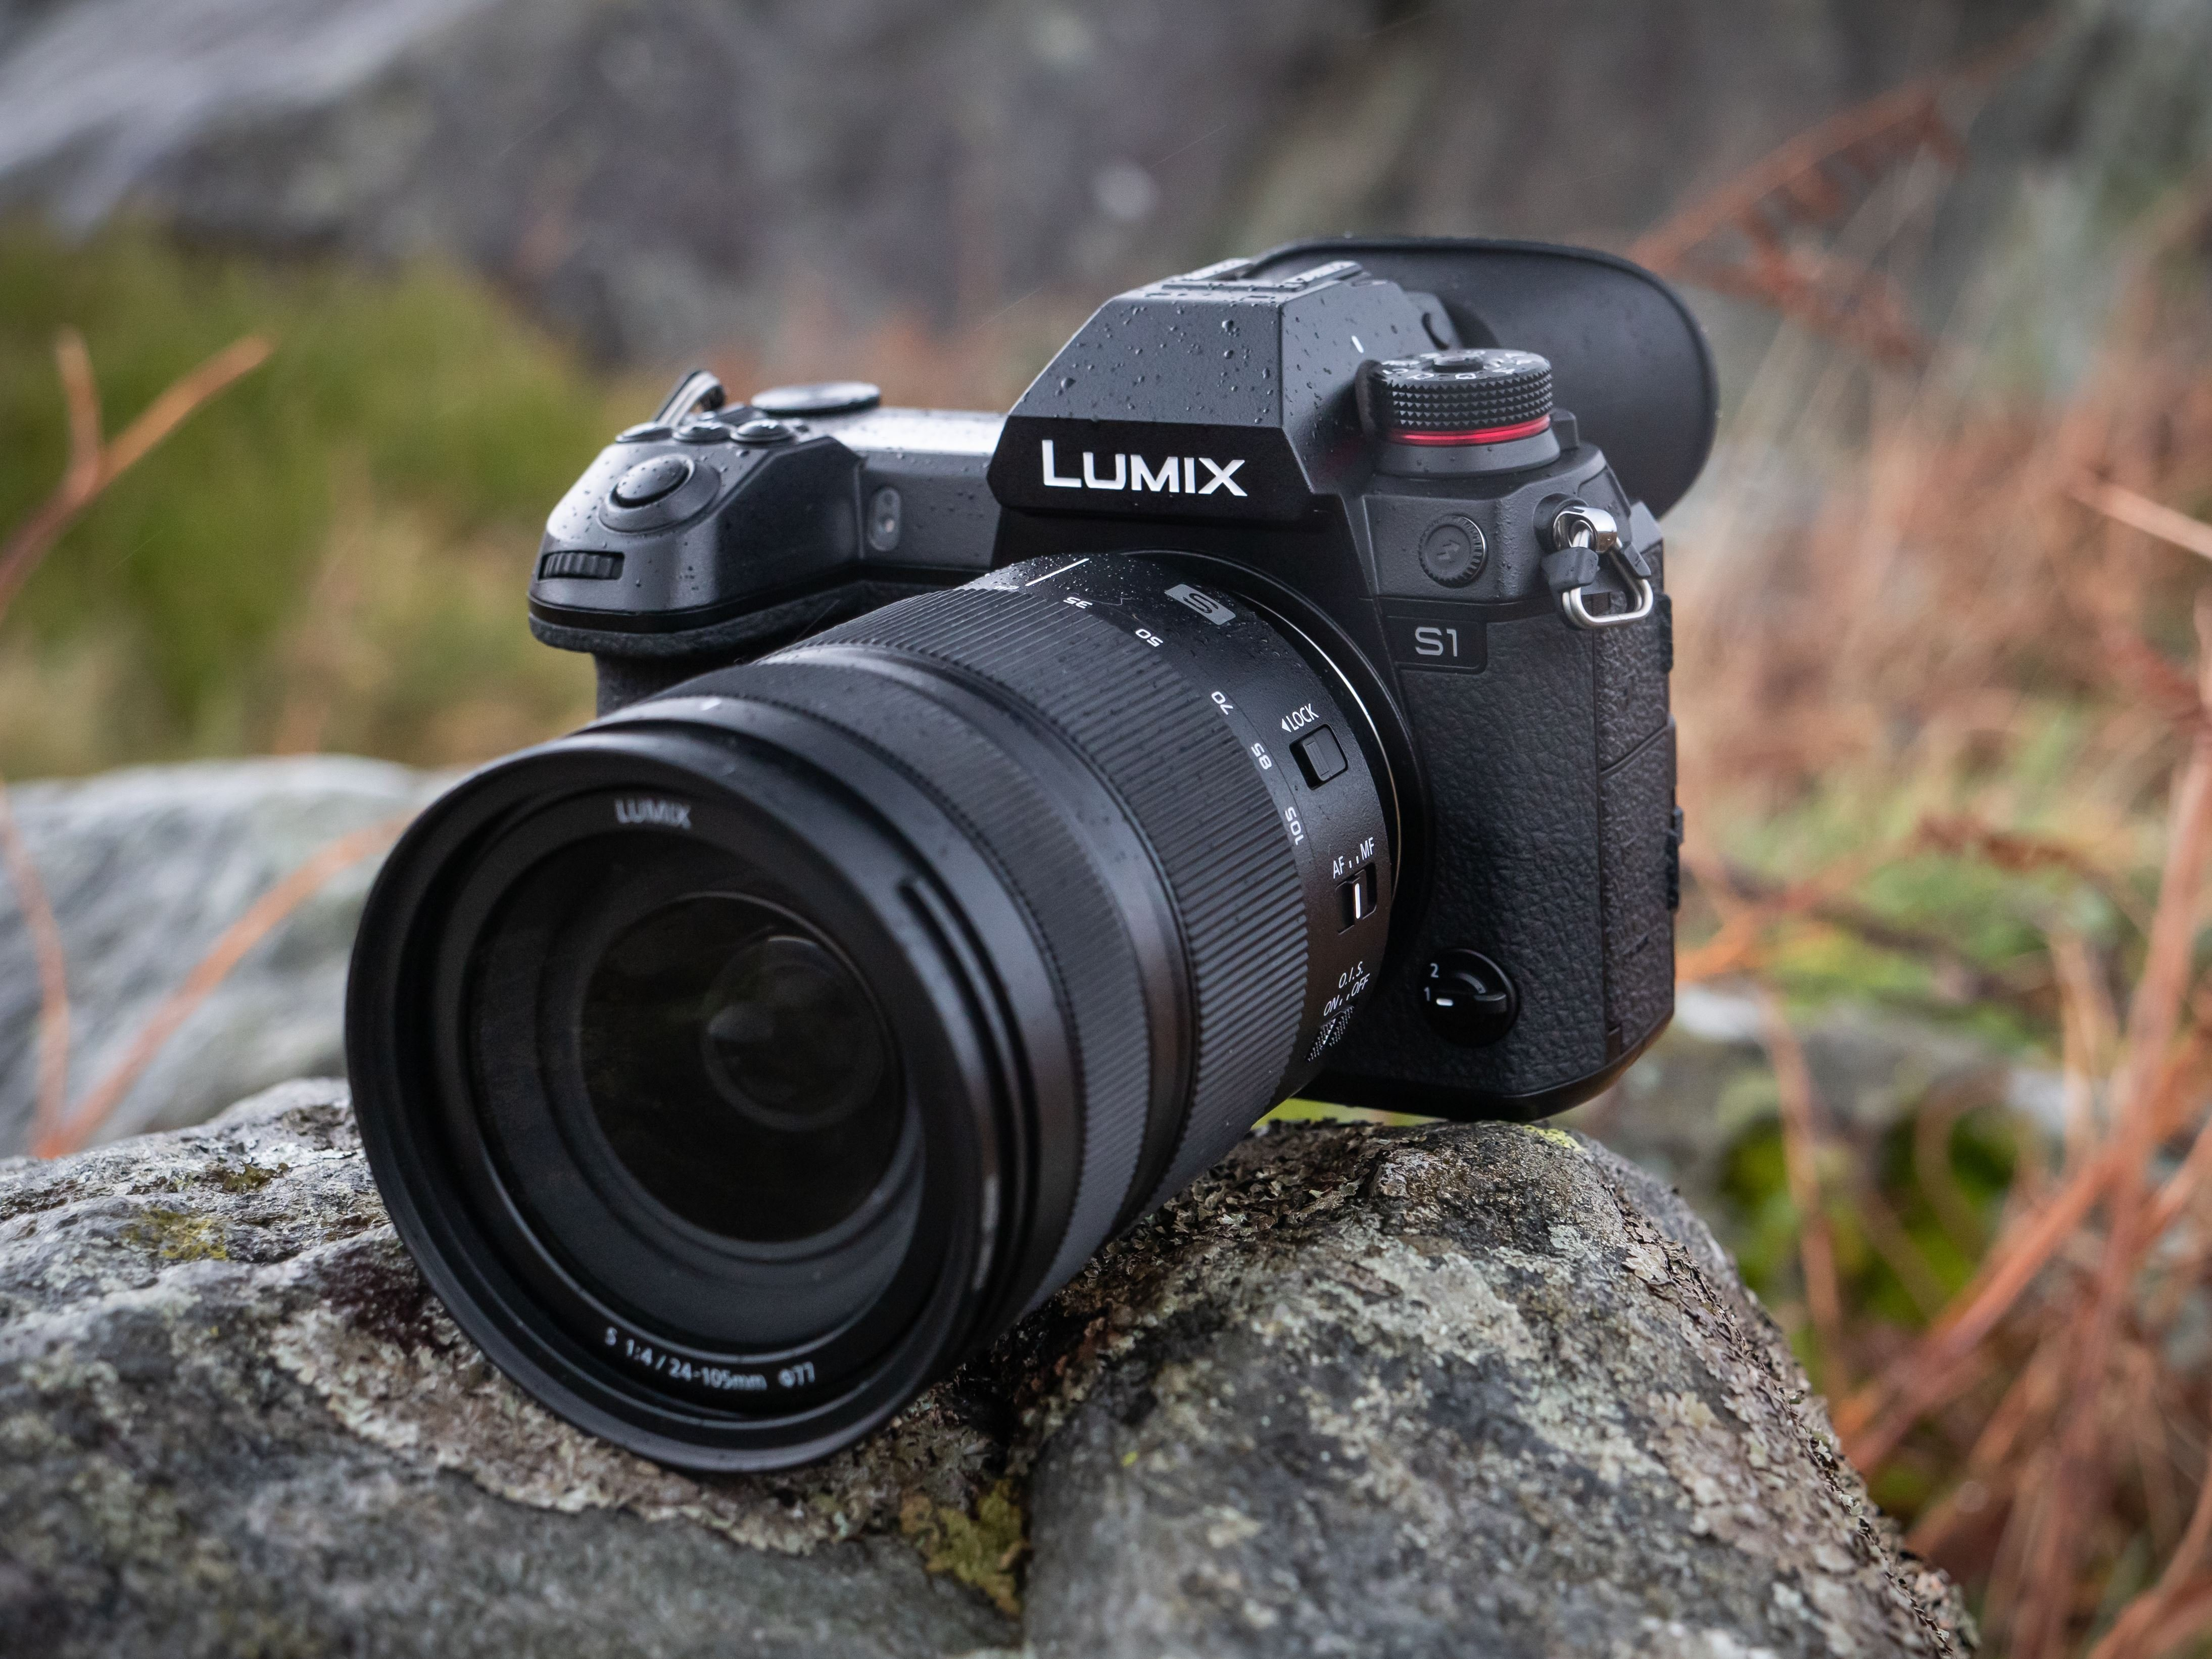 Shooting video on the Panasonic LUMIX S1 | Real-world review | Wex